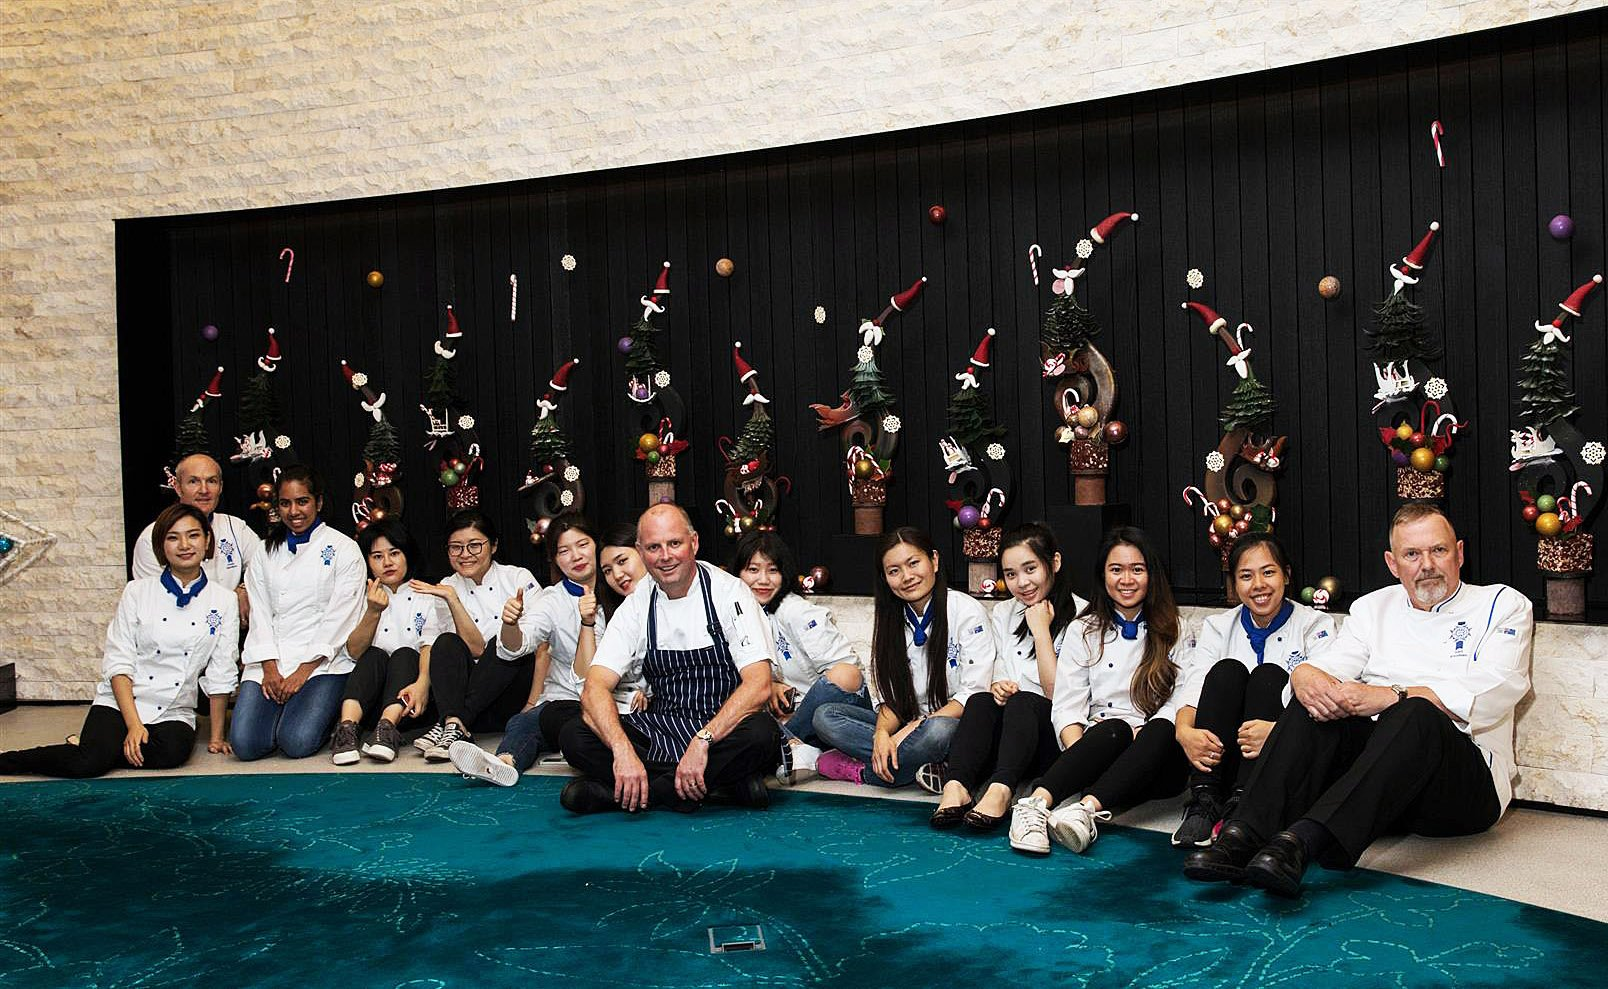 Sydney students impress with giant chocolate showpiece display